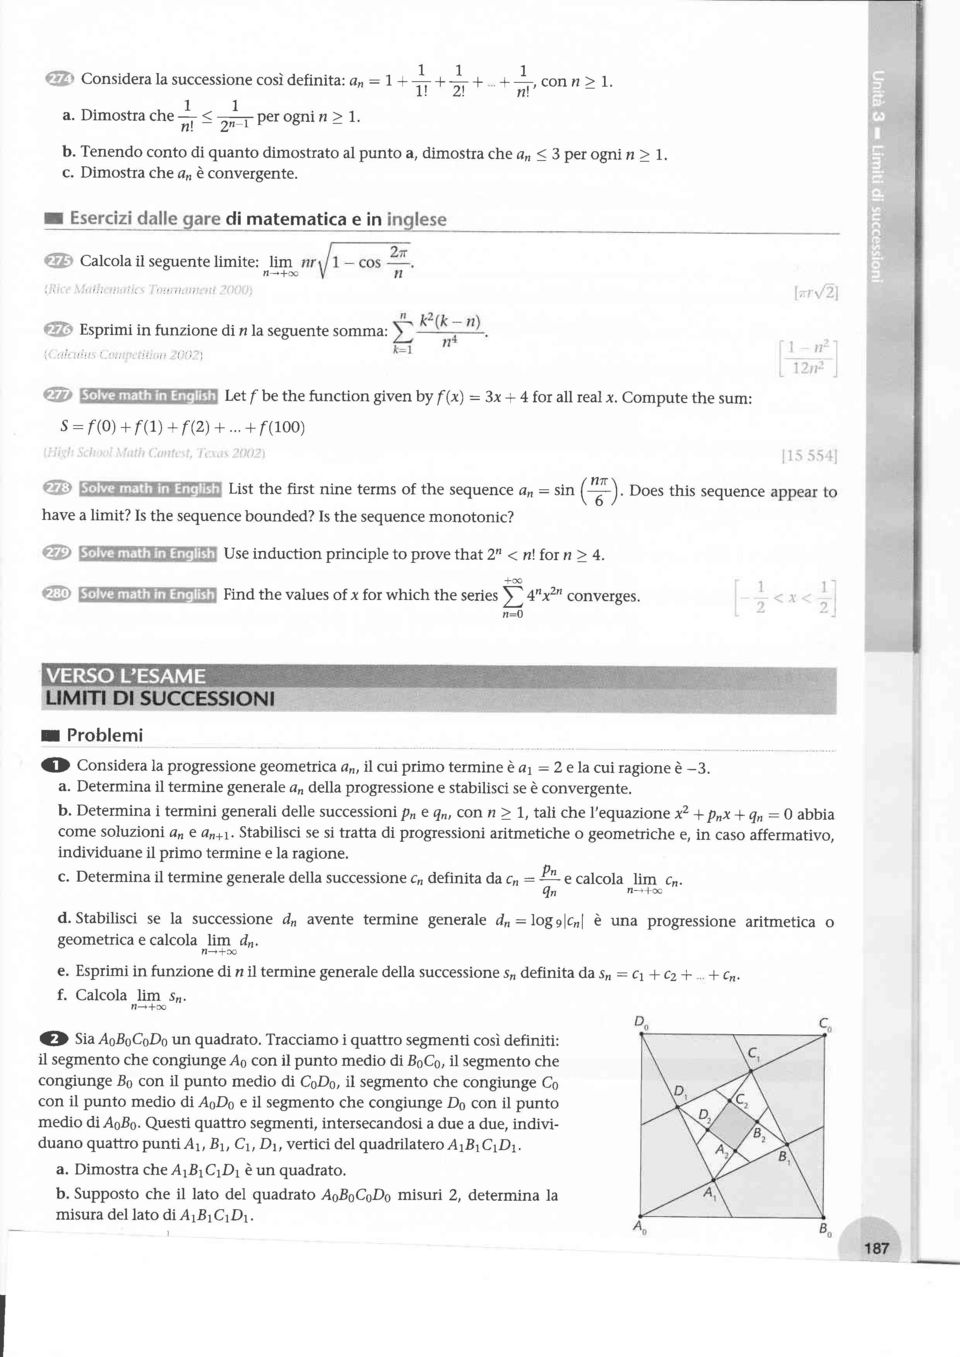 , di matematica e in Esprimi in funzione dinla seguente somma: ', t:ì, ':r' ' ',, r':,r, l)')-\, s : r(0) + r(1) + f(2) +... + r(100) l ''',i Let f be the function given by f (*) : 3x + 4 for all real.